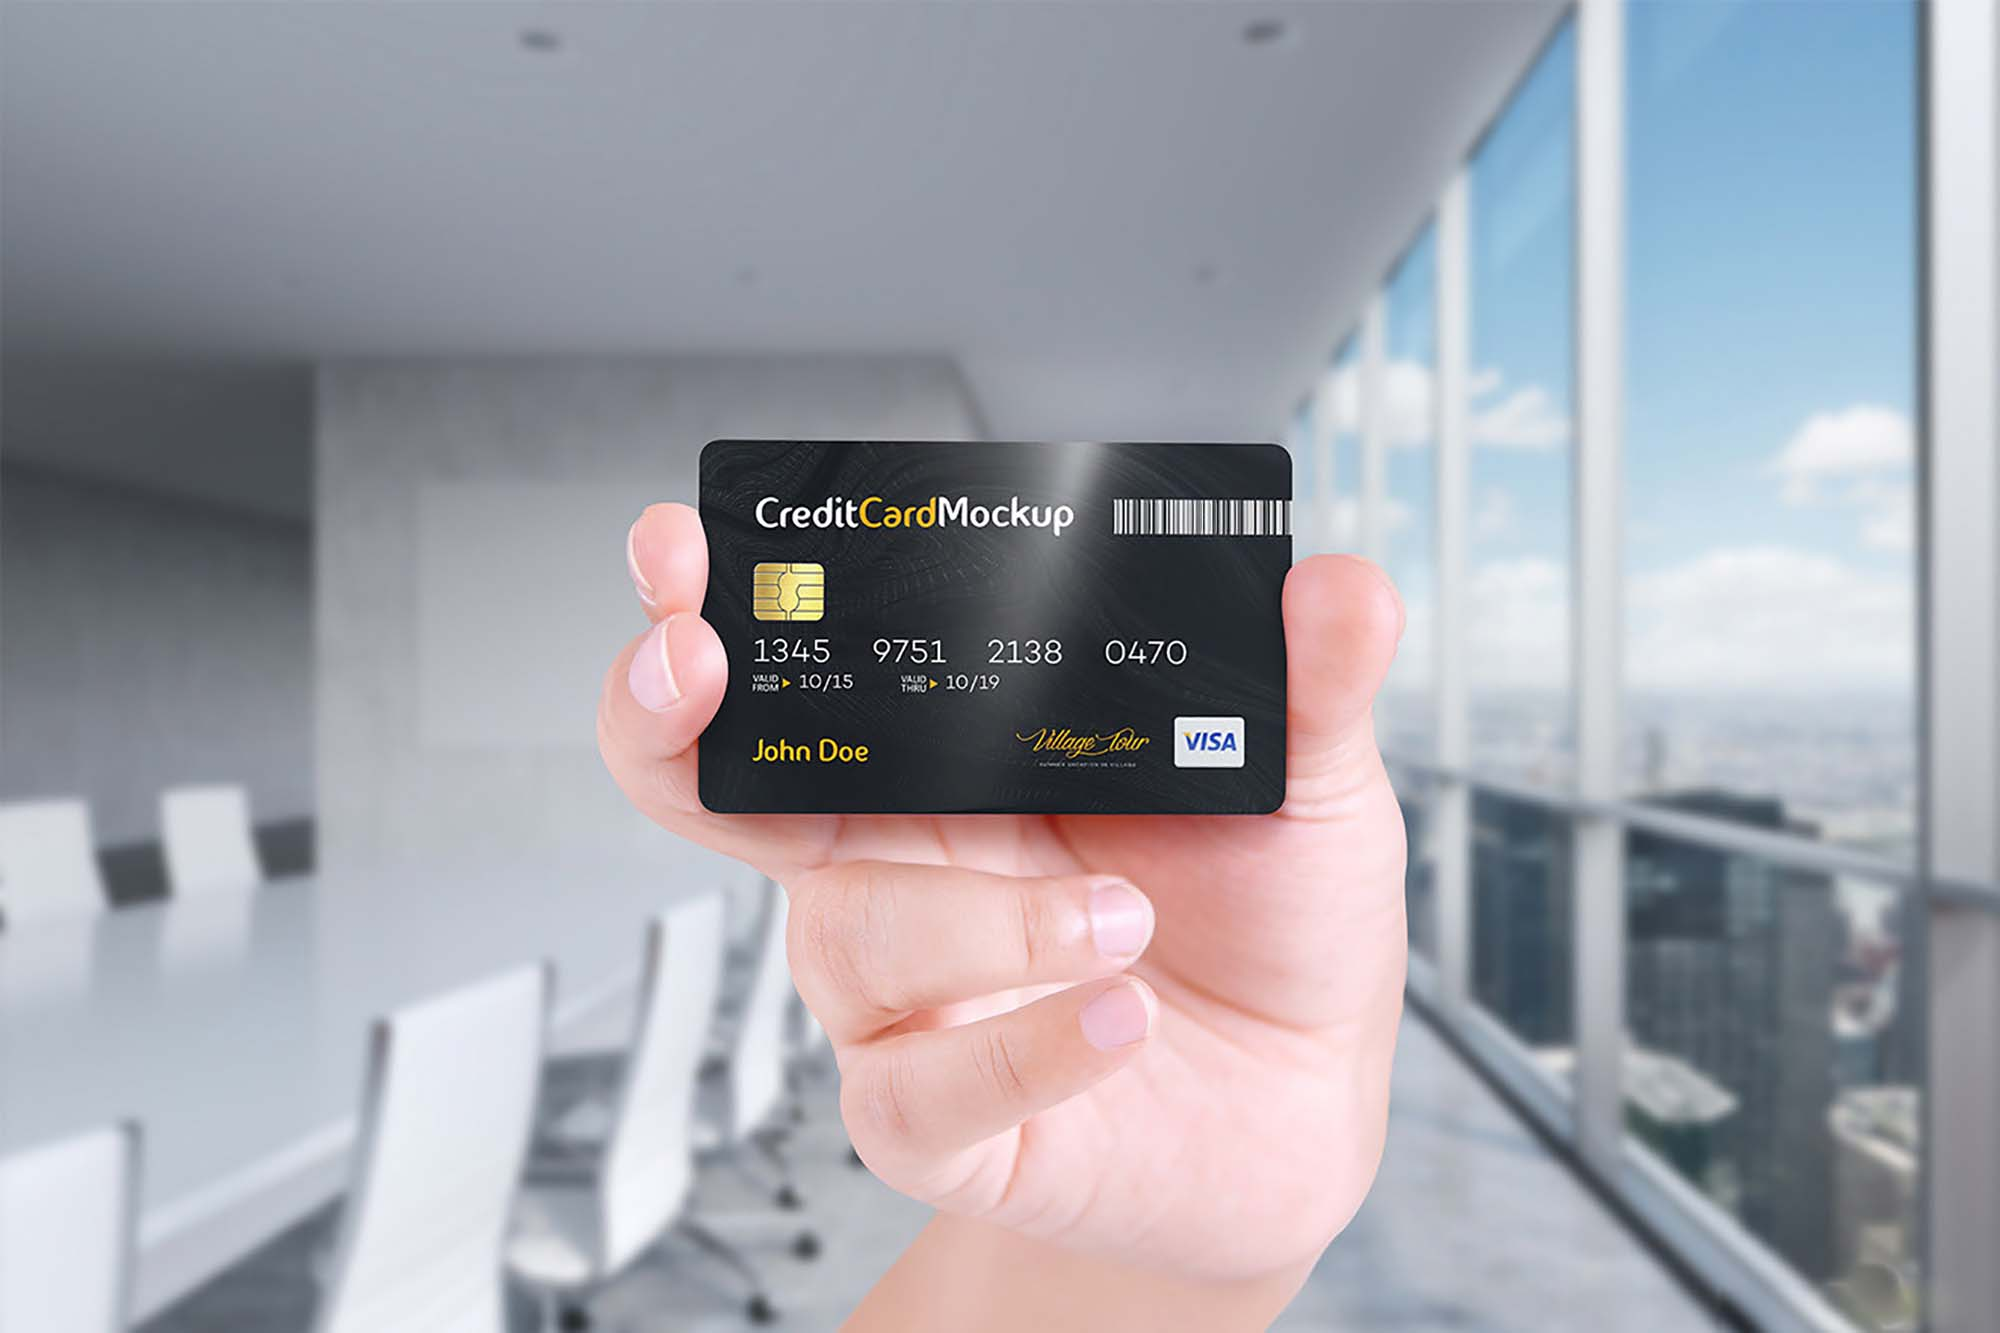 Credit Card in Hand Mockup 6